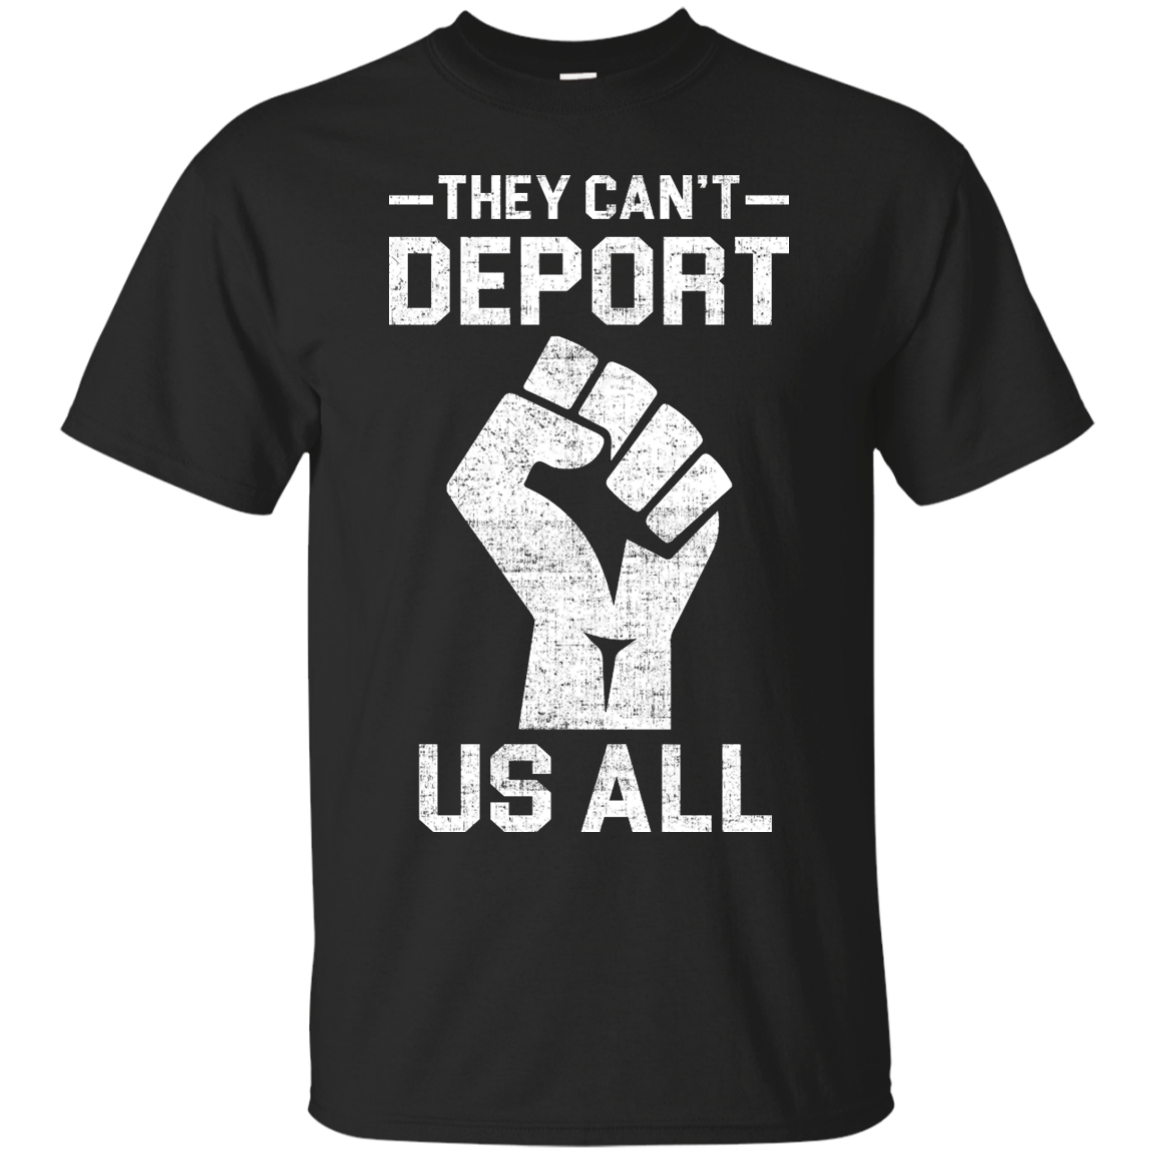 Nobannowall They Cant Deport Us All Shirt Hoodie Tank sold by iFrogtees